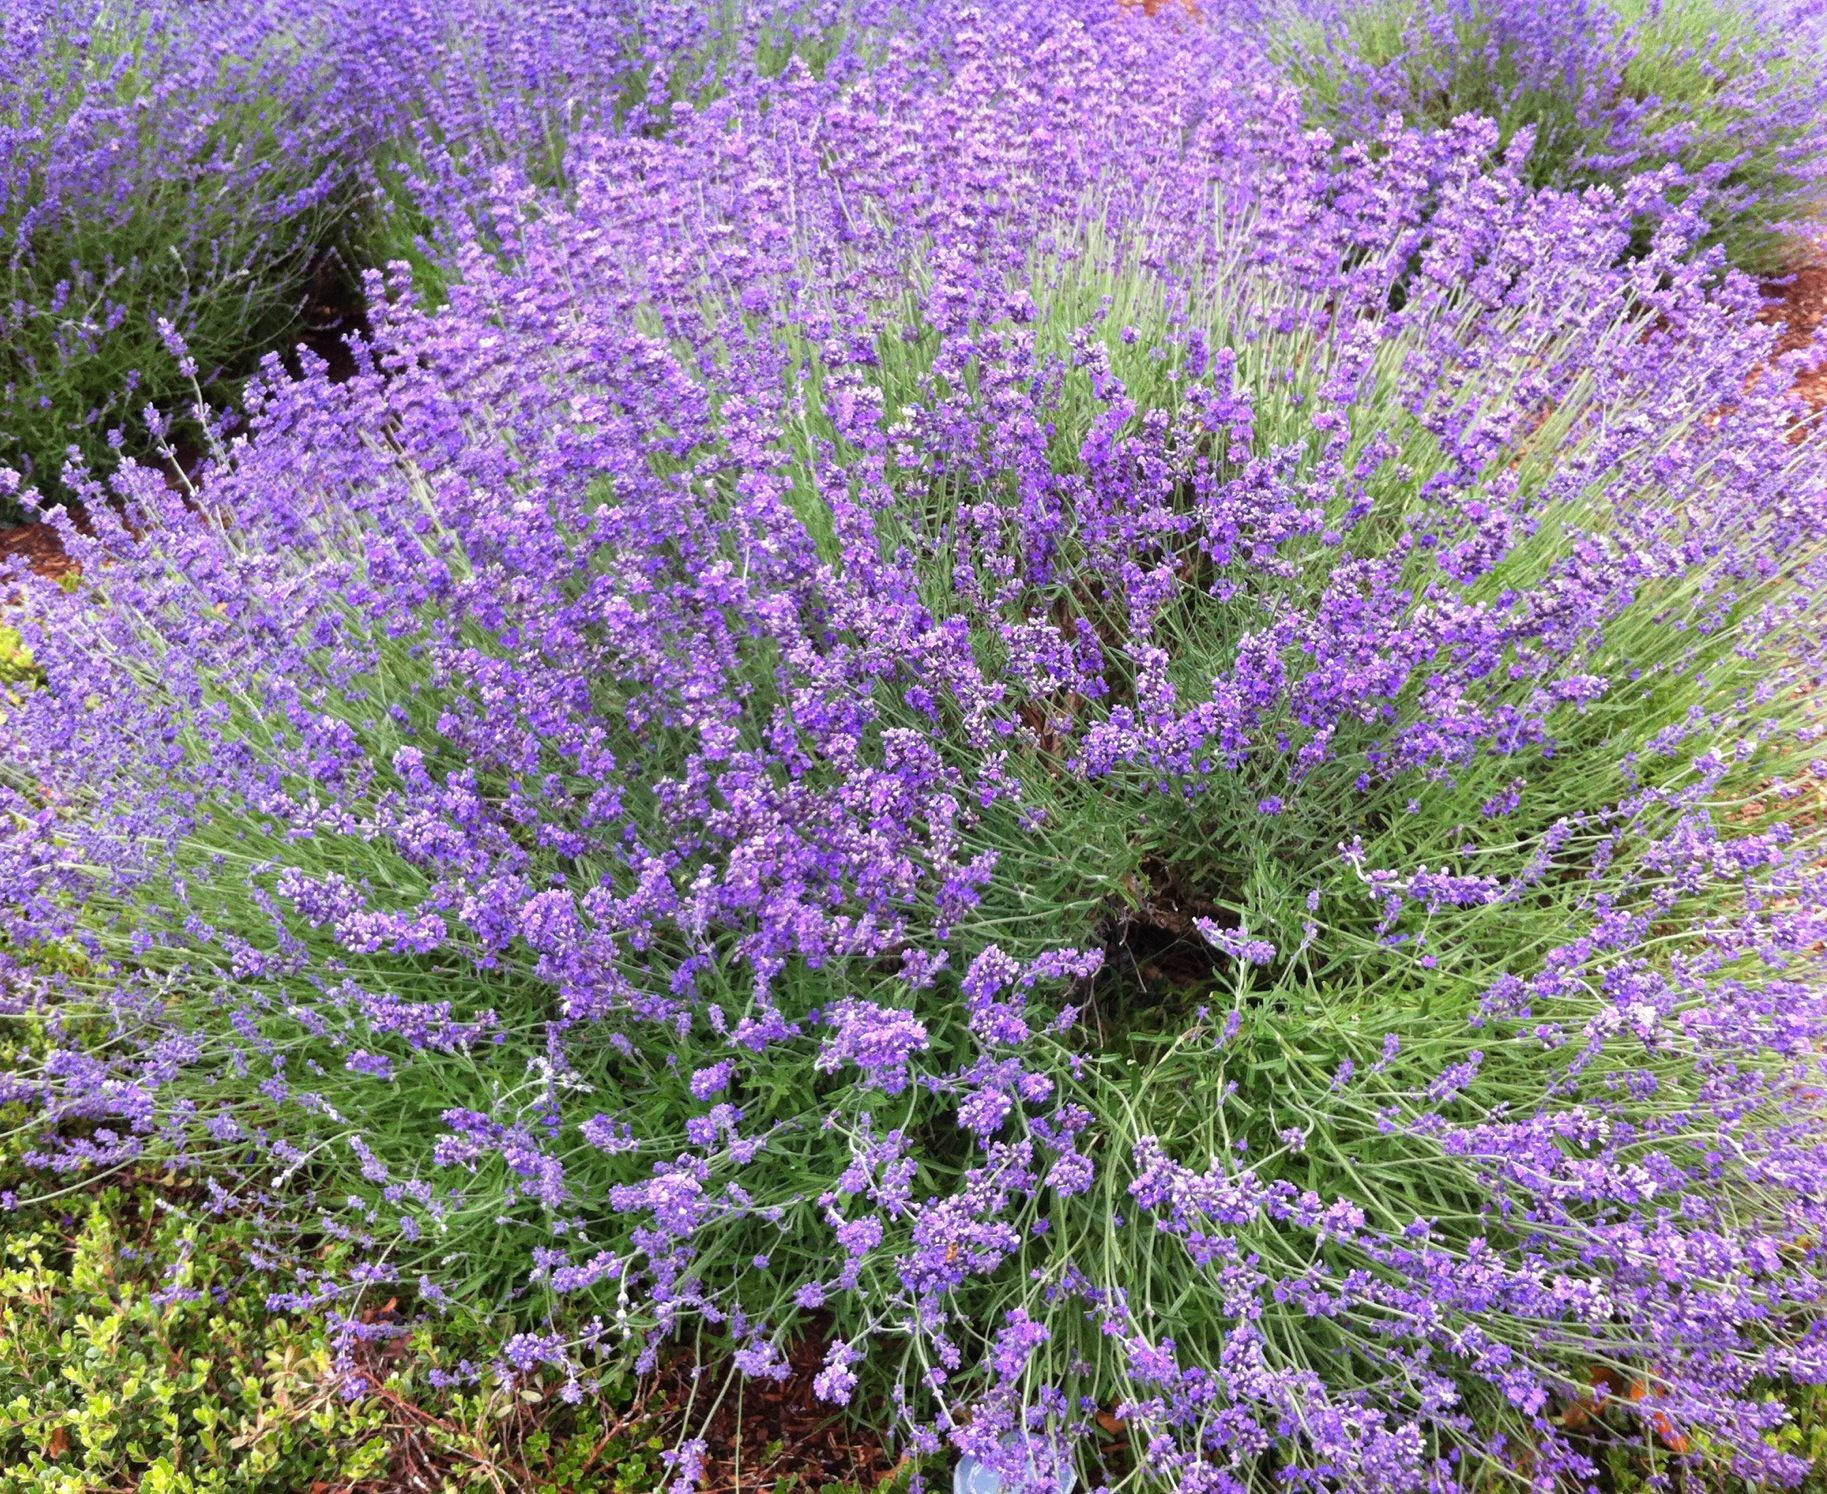 Landscaping With Lavender Plants : Garden flowers trees gardens the o jays and need to